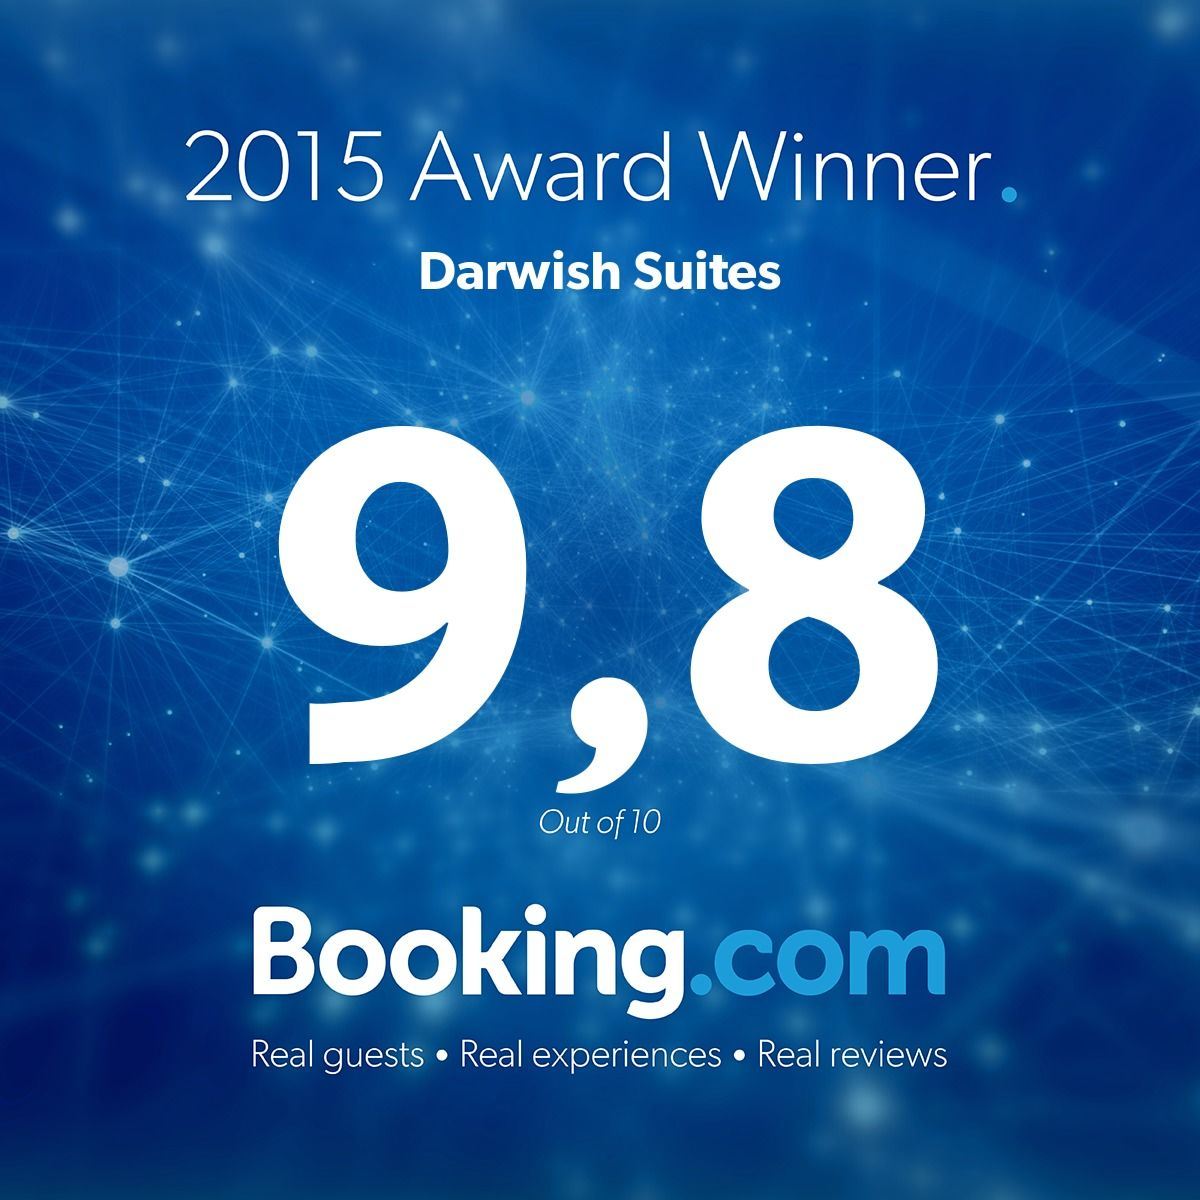 2015 Award - Darwish Suites